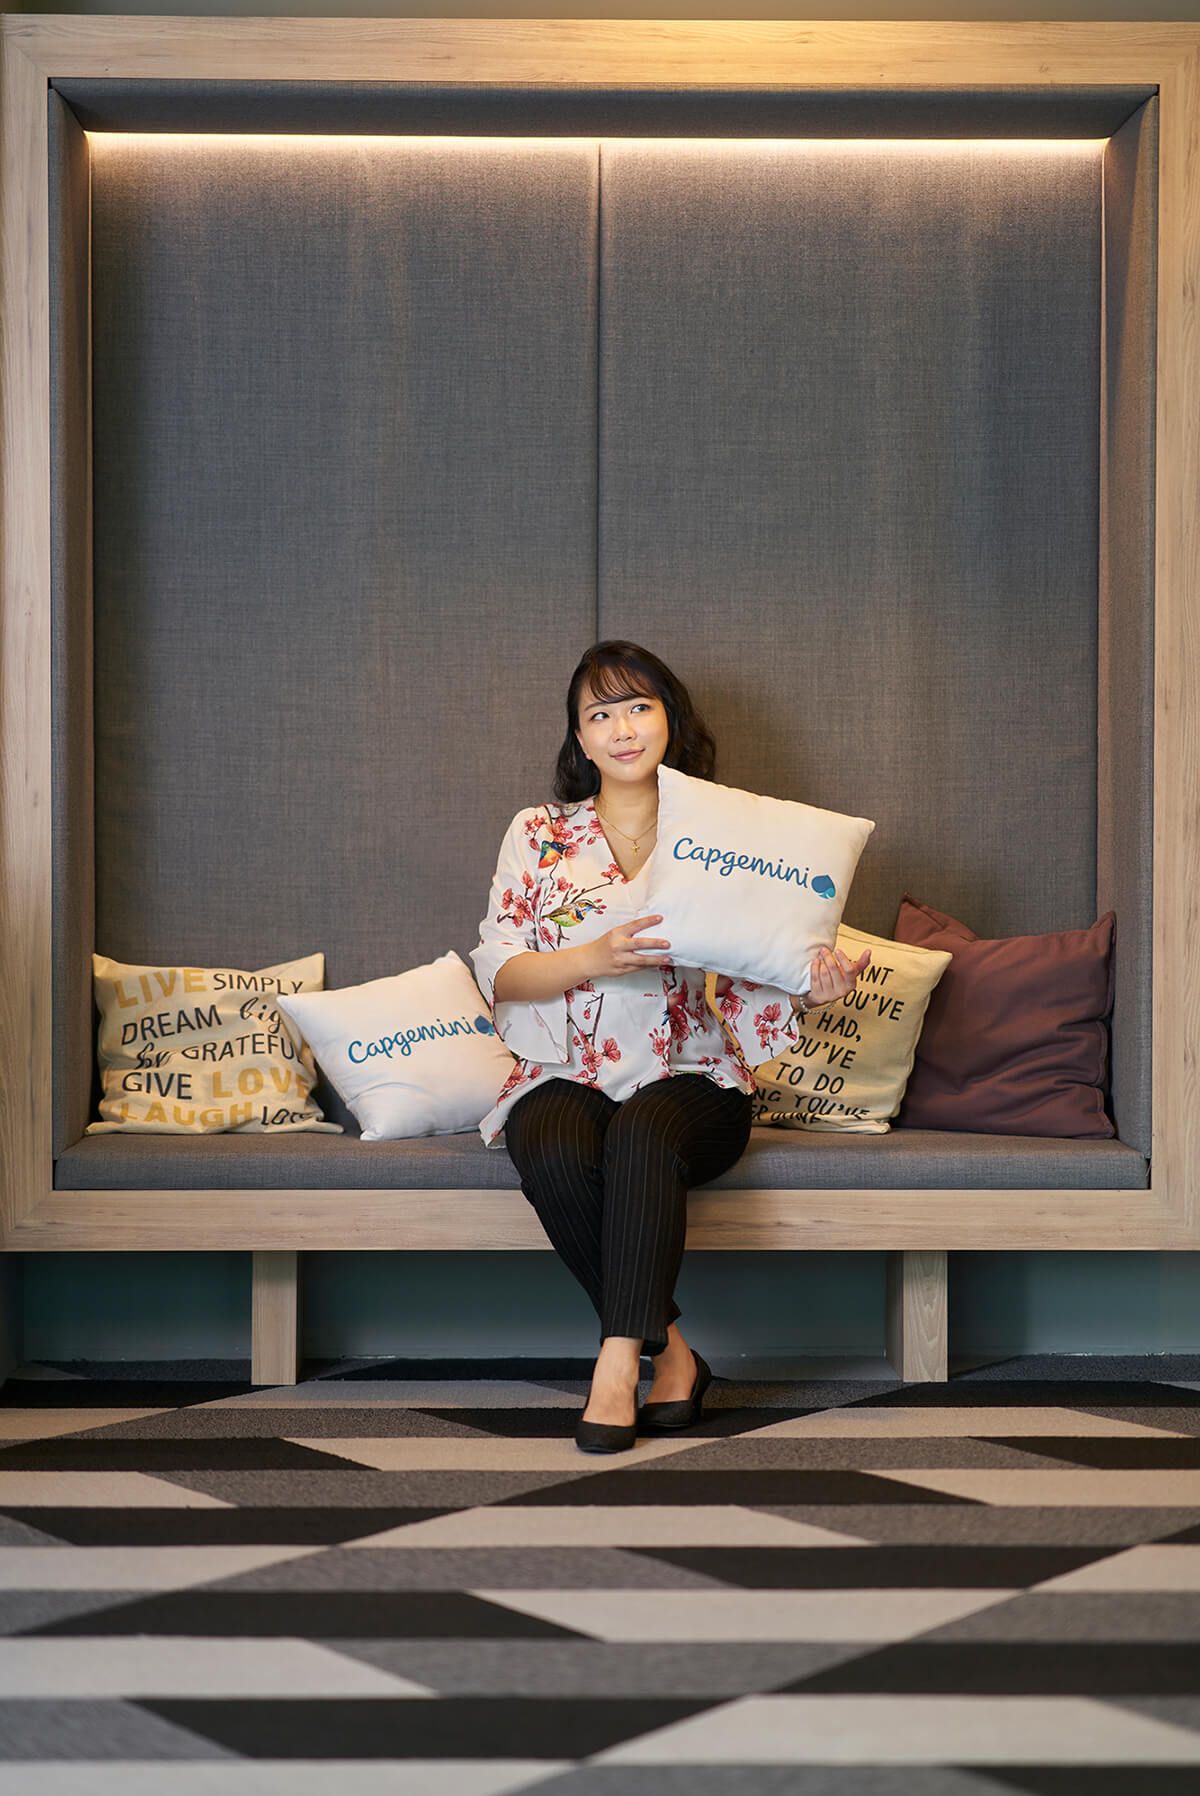 DigiPen (Singapore) grad Sherilyn Kan poses with a Capgemini pillow